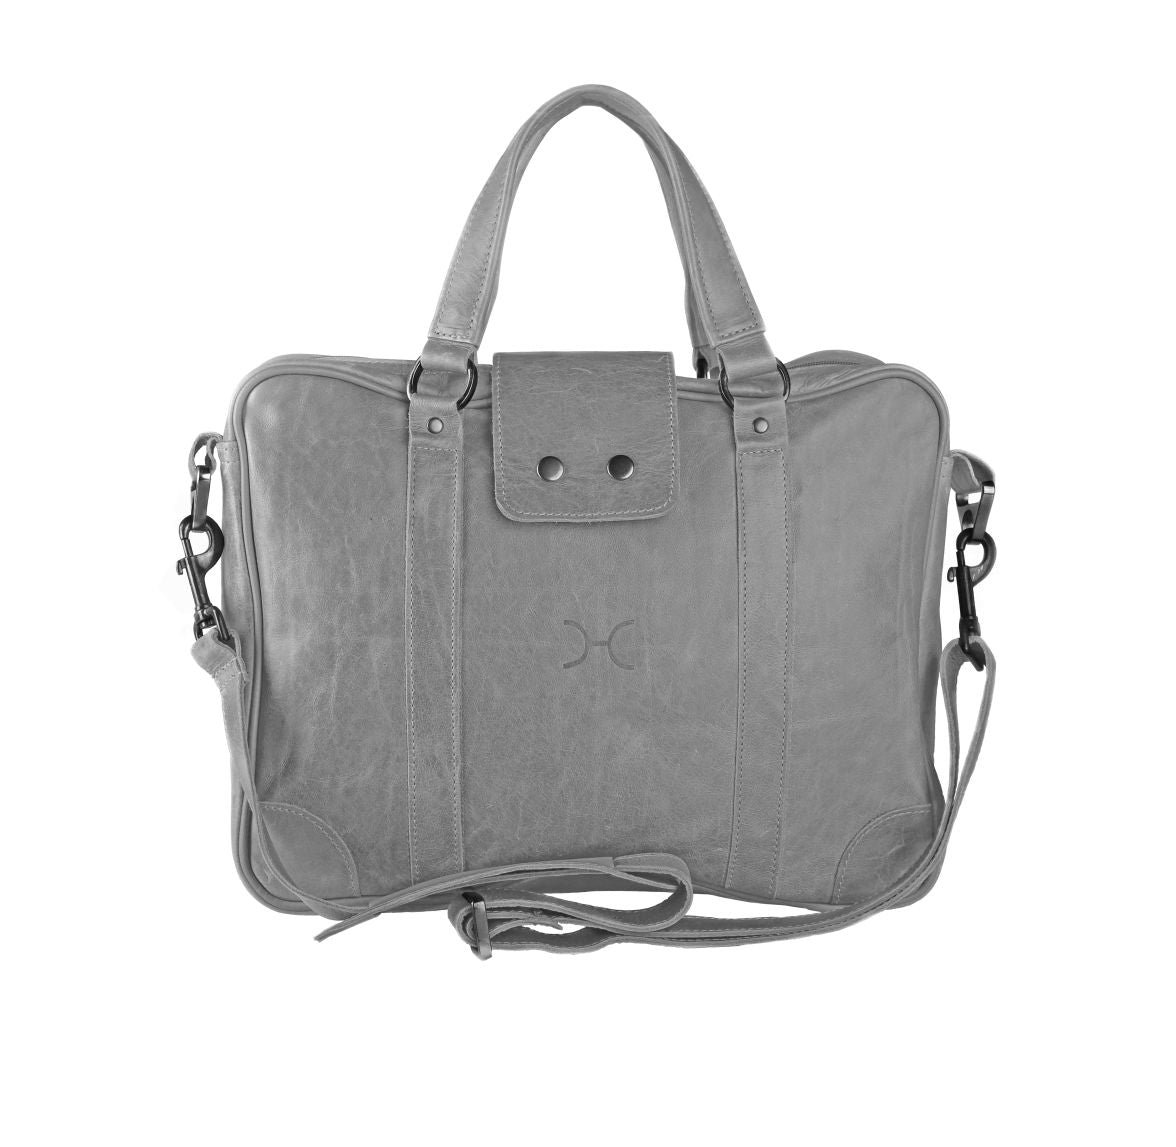 Thandana Laptop Bag - Grey - Zufrique Boutique